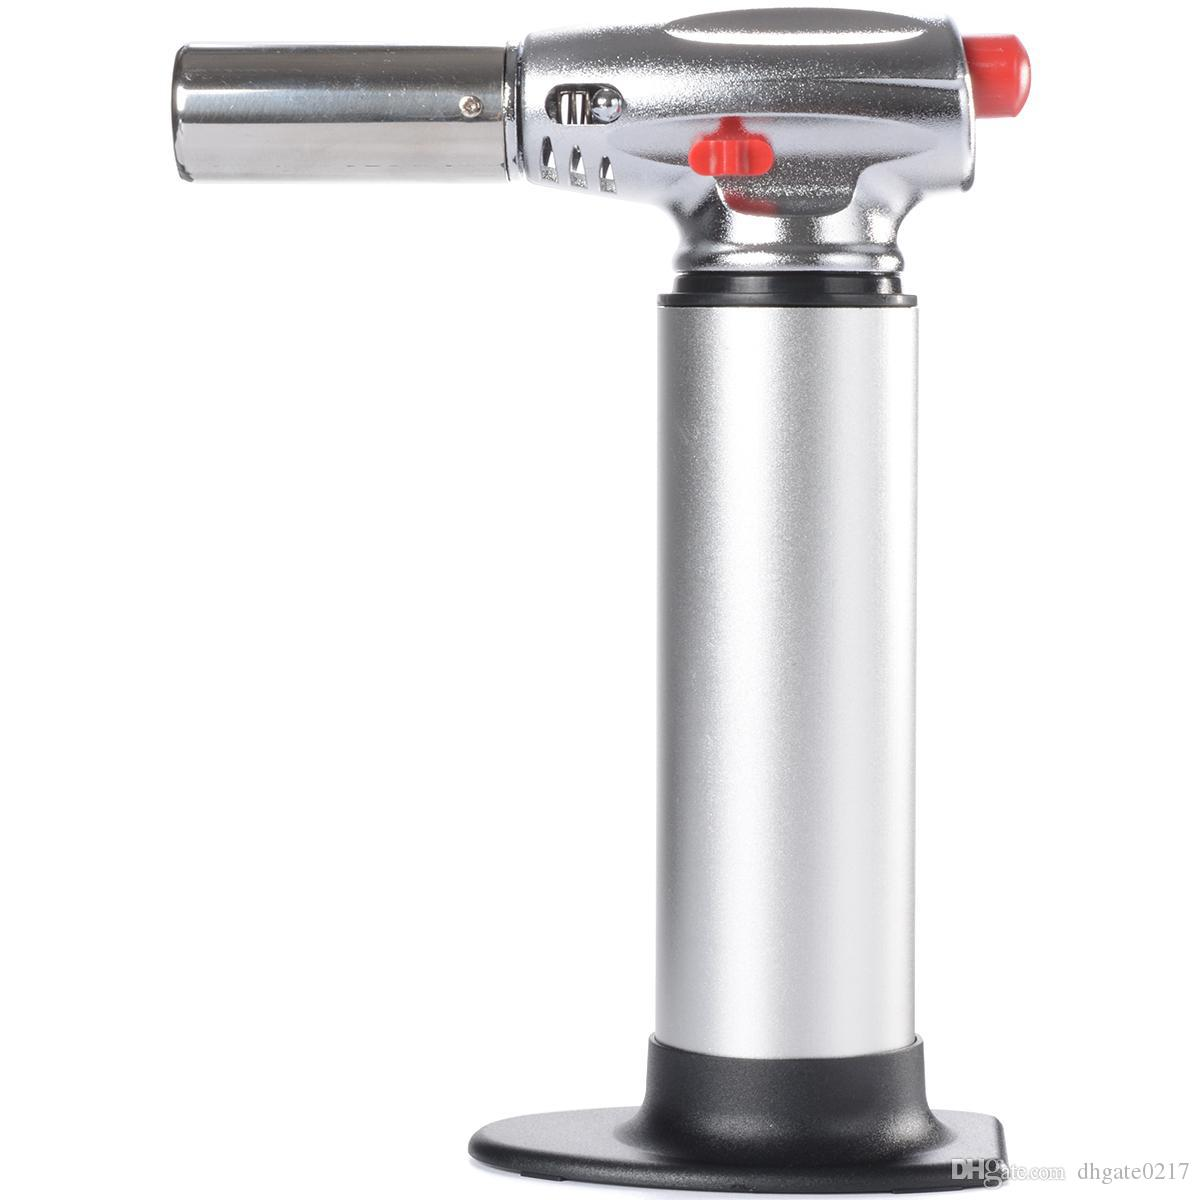 Ordinaire 2019 DHL Free 1300C Butane Scorch Torch Jet Flame Torch Kitchen Torches  Giant Heavy Duty Butane Refillable Micro Culinary Torches From Dhgate0217,  ...